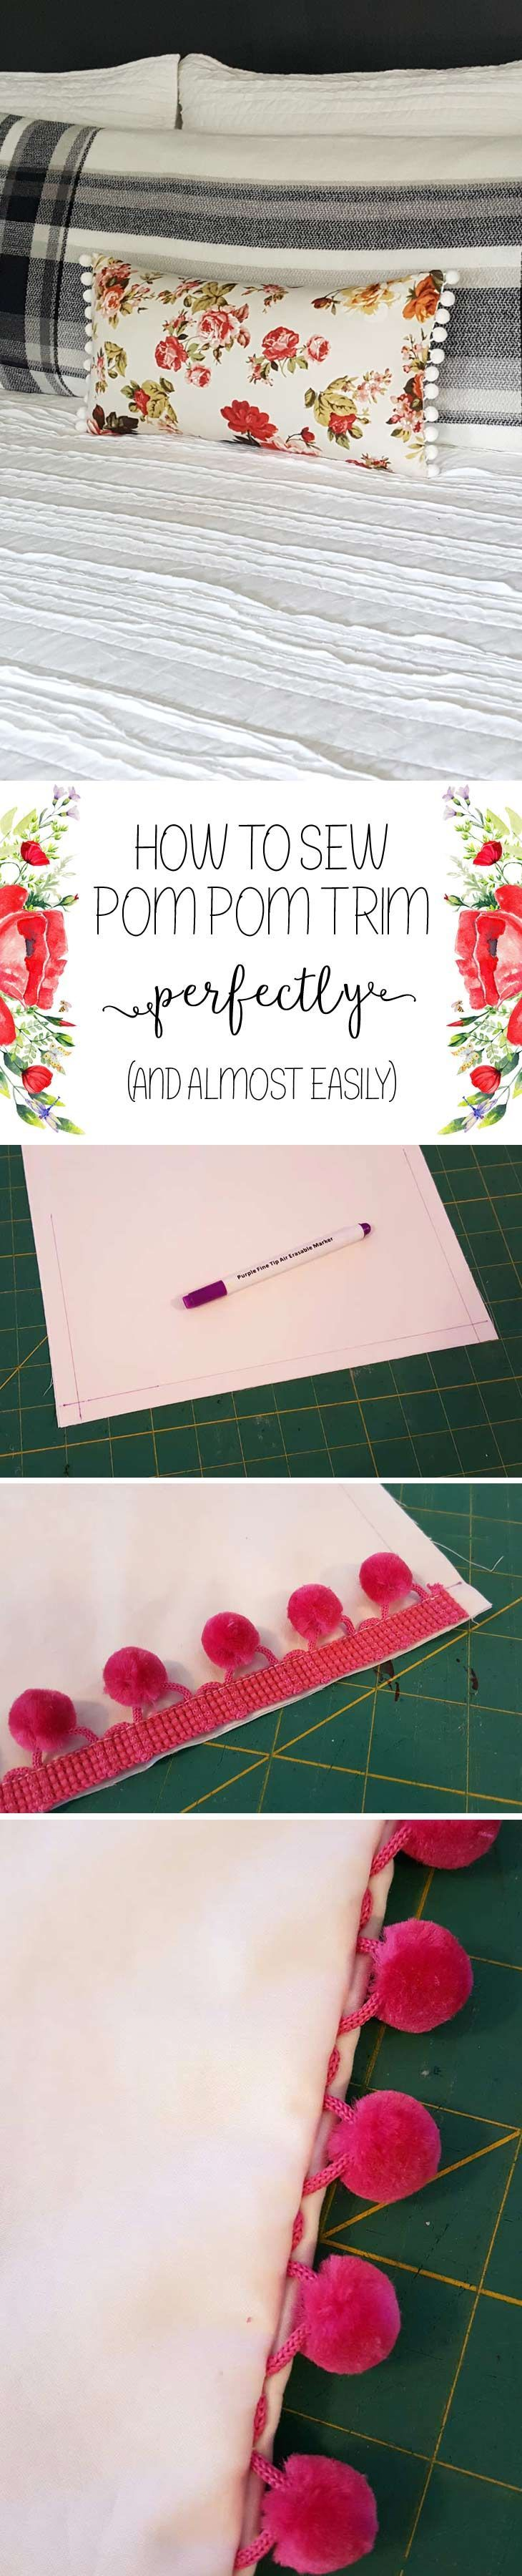 Pin for later. Tips and tricks on sewing pompom trim neatly and precisely....hate uneven trim!